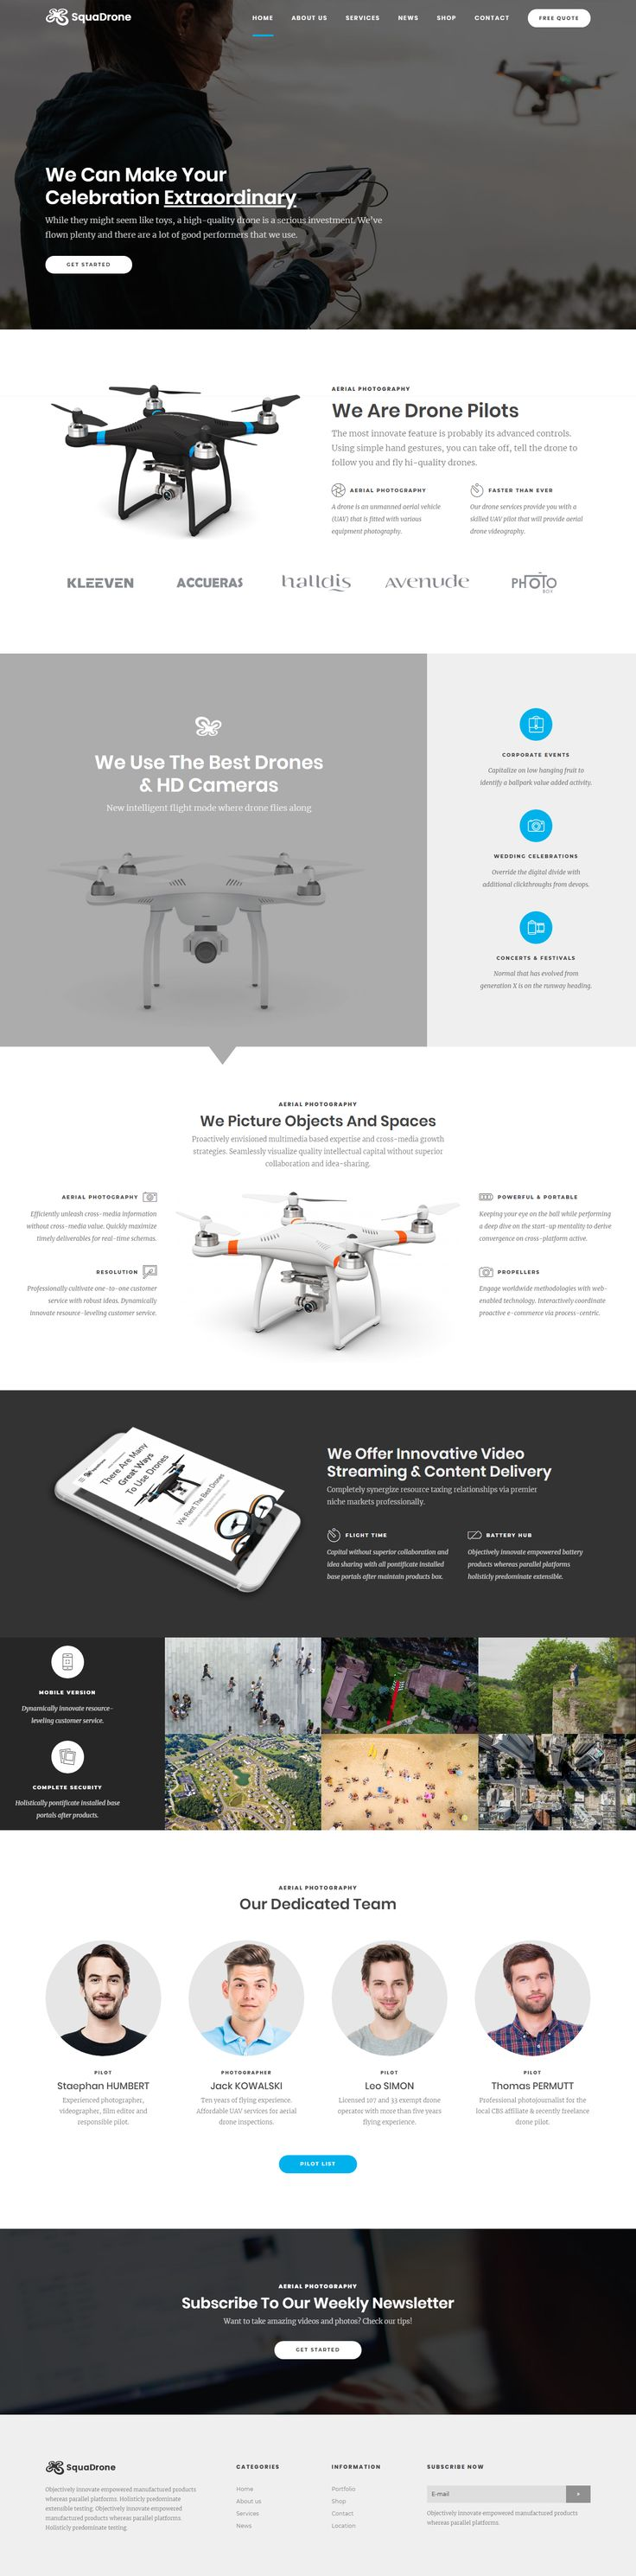 #squadrone #WordPress #theme #drone #UAV #business #services #responsive #retinaready #boldthemes #themeforest #envato #photography #video #filmmaking